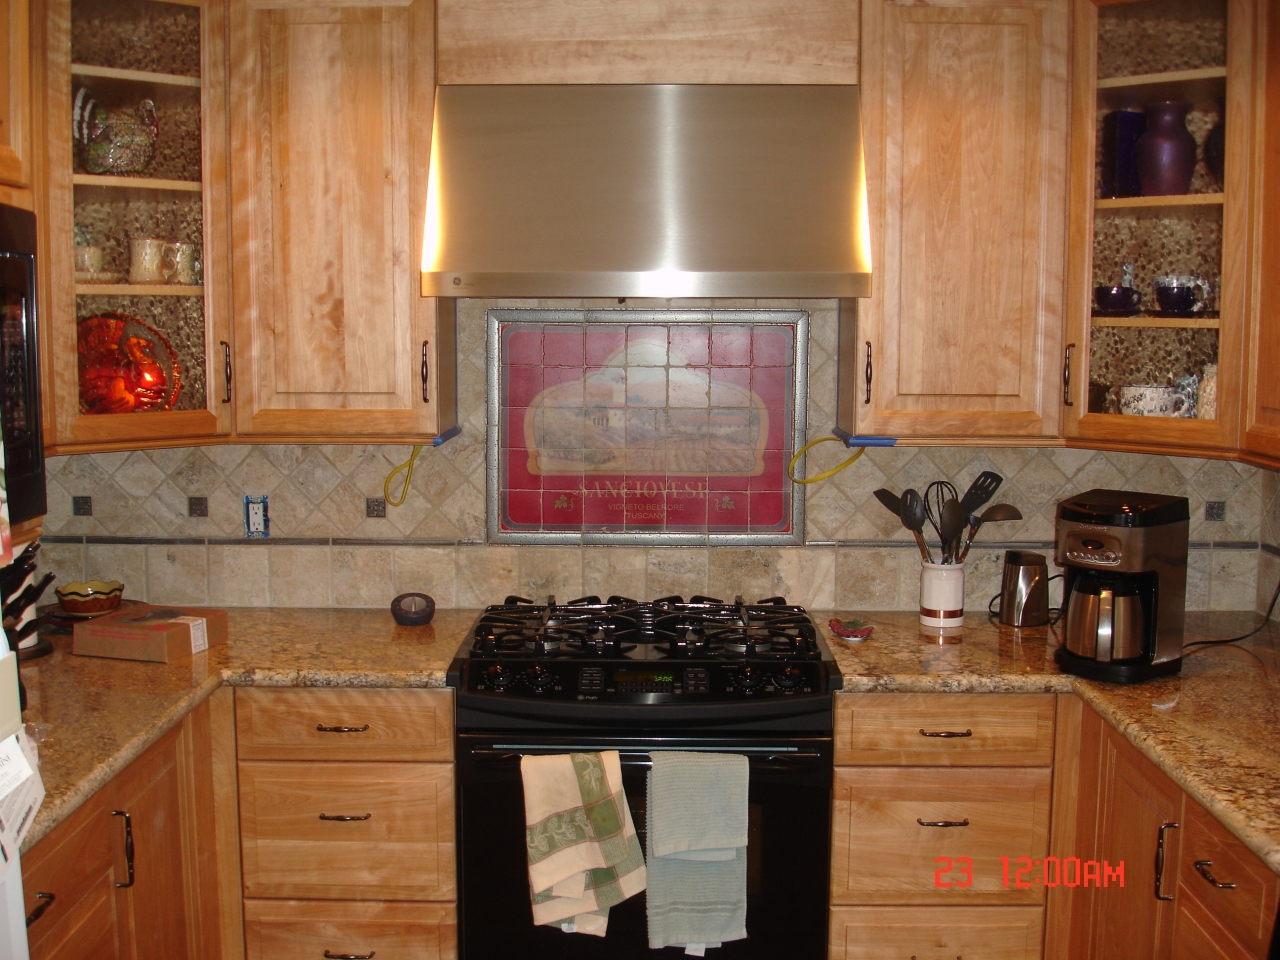 custom cabinet doors and cabinetry kitchen remodel